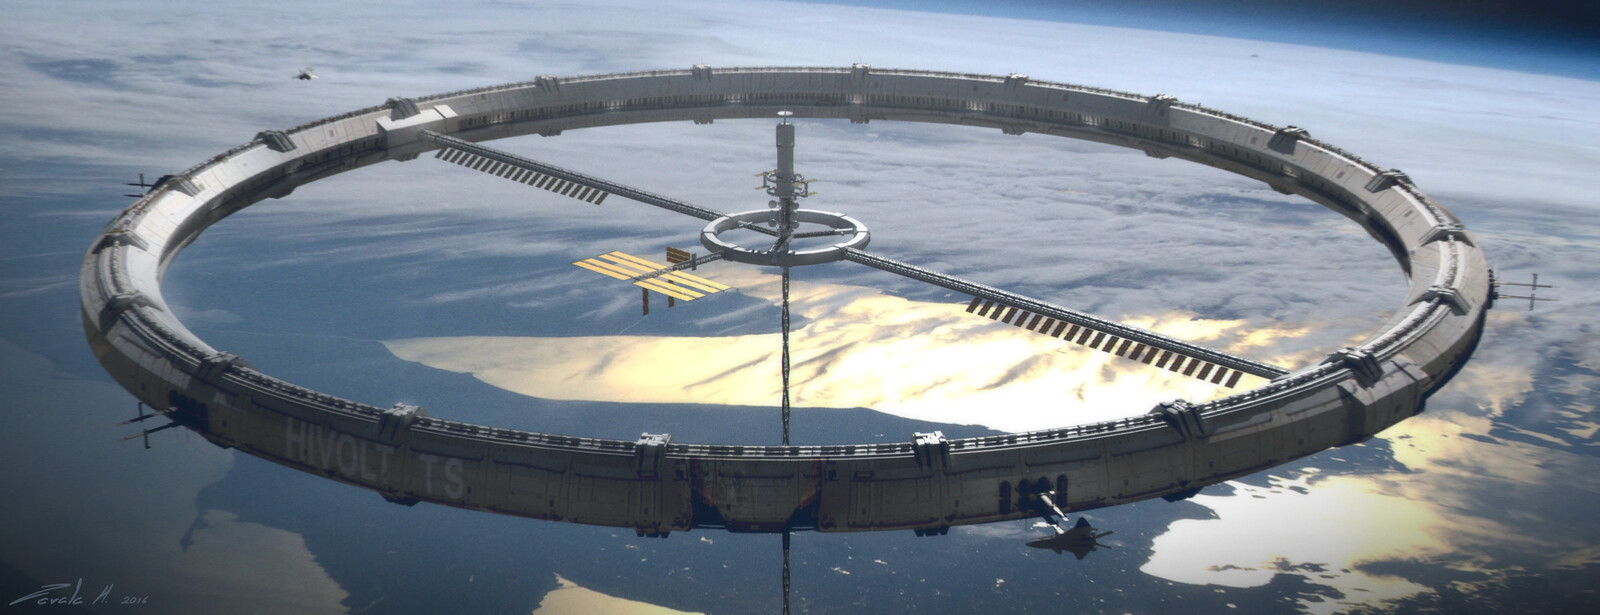 Space elevator ring early concept.